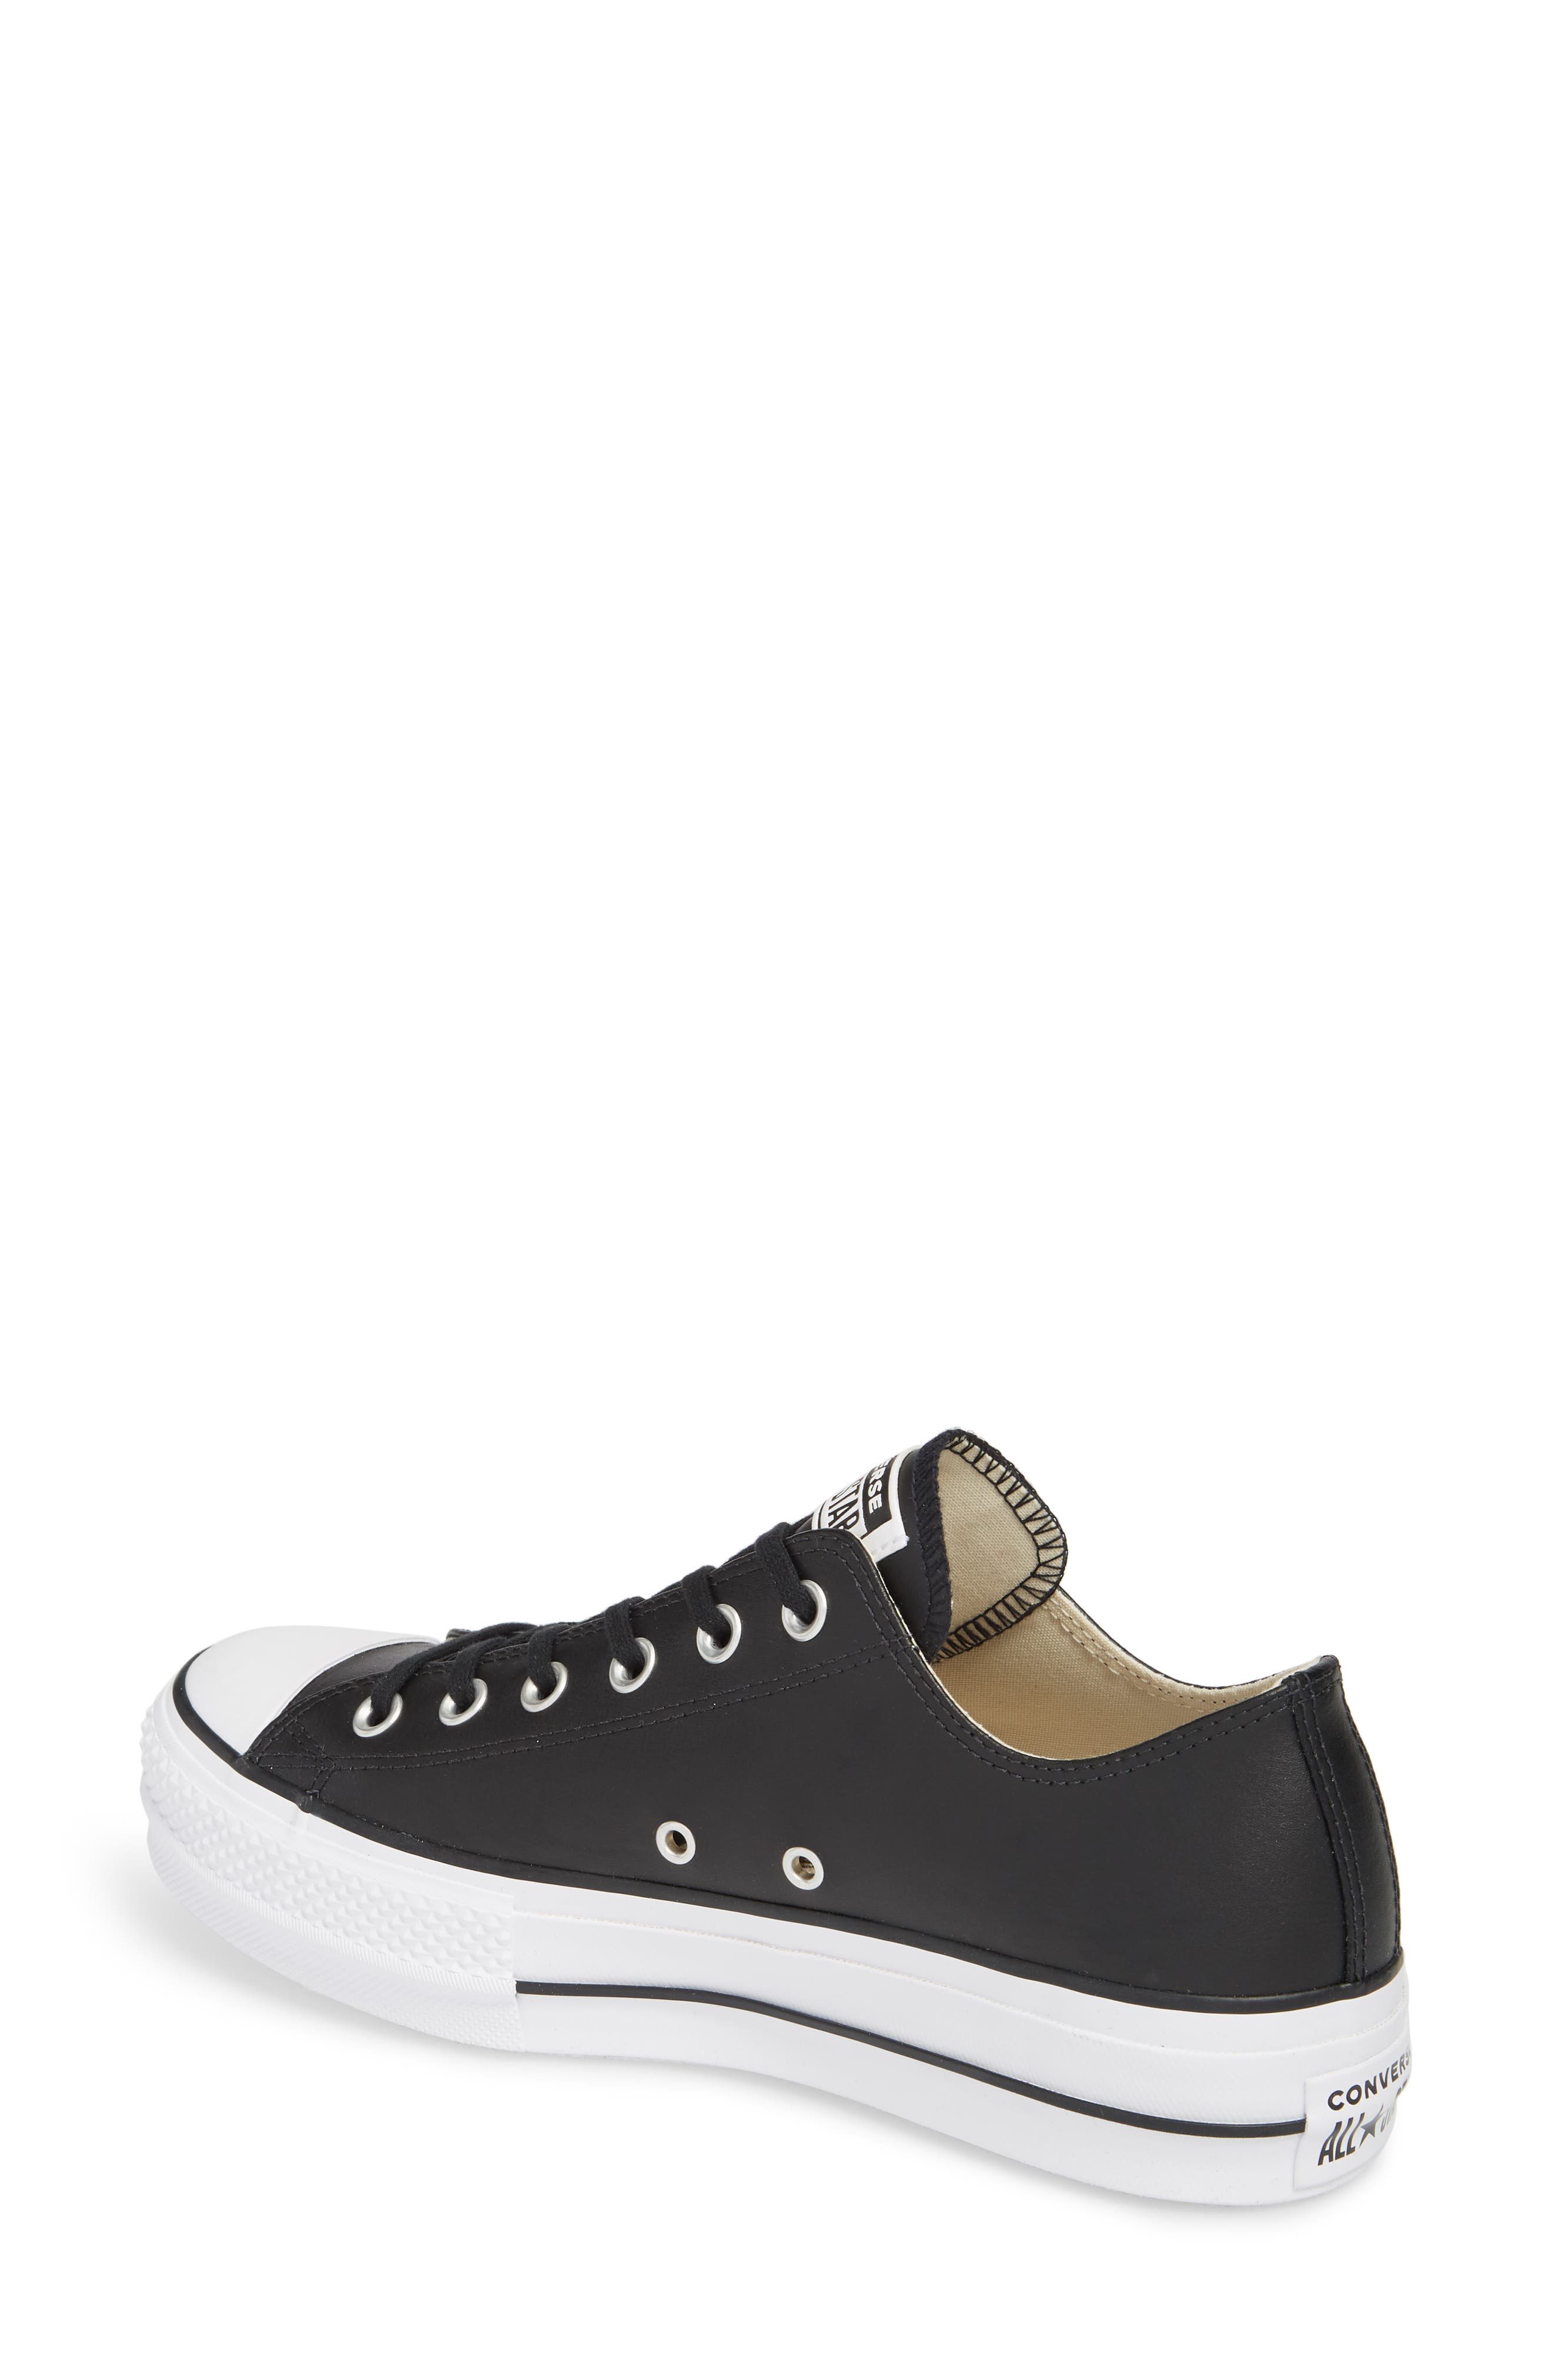 CONVERSE, Chuck Taylor<sup>®</sup> All Star<sup>®</sup> Platform Sneaker, Alternate thumbnail 2, color, BLACK/ BLACK LEATHER